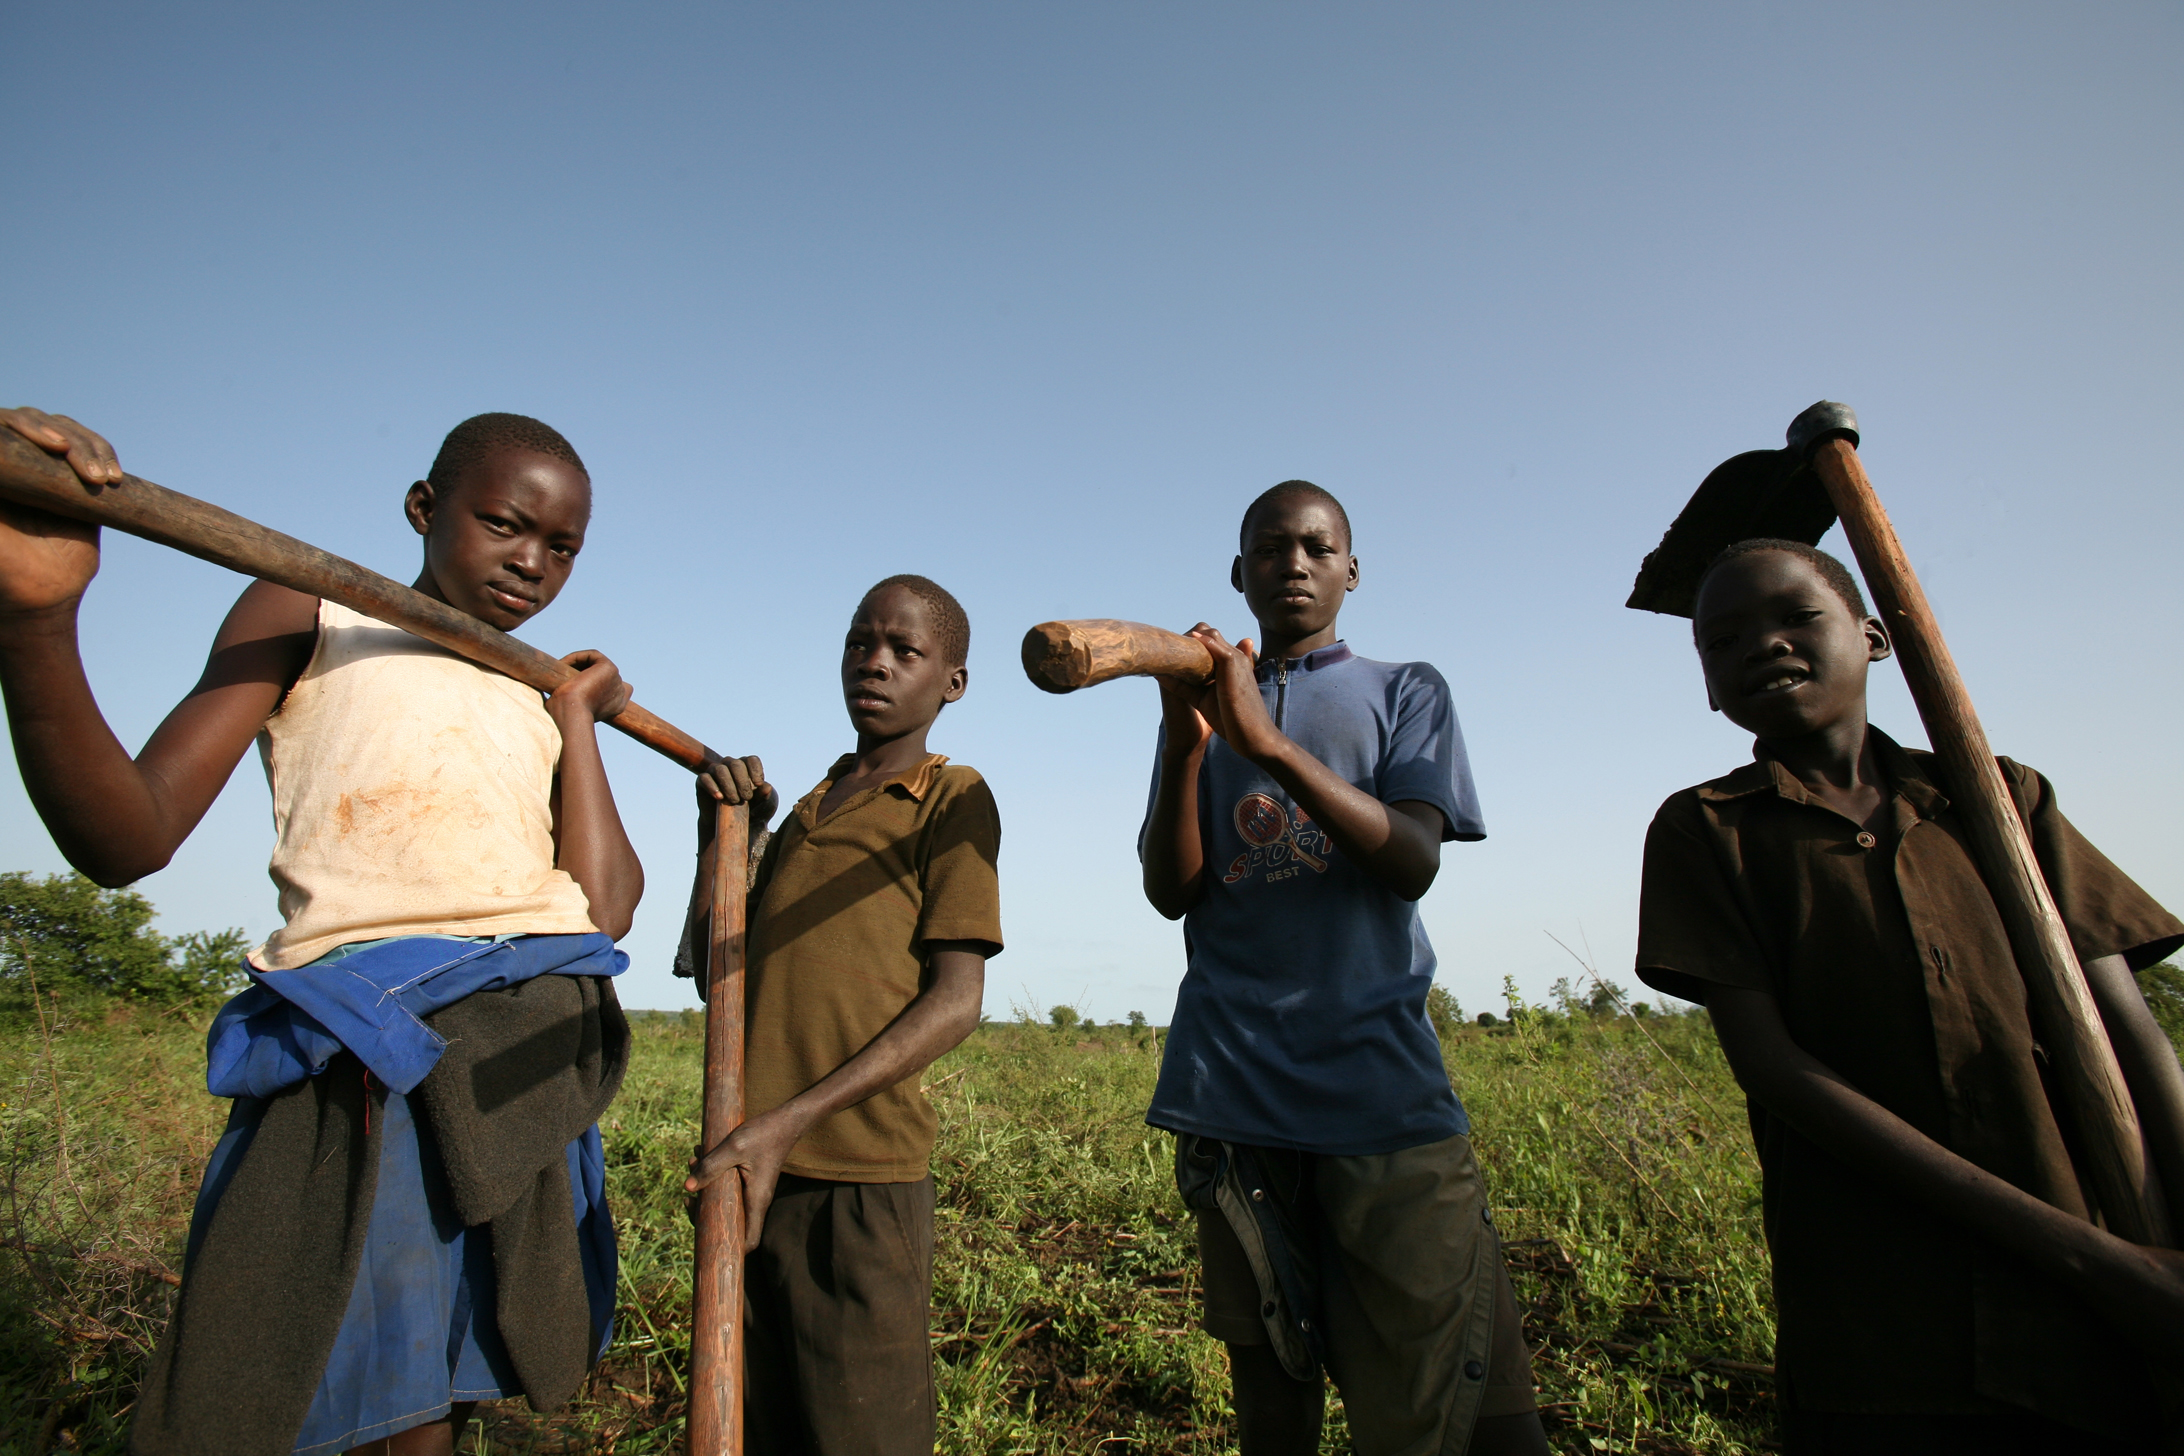 Young boys prepare land for cultivation near Oromi IDP camp, Kitgum District, northern Uganda, 19 May 2007. In the north, particularly in Gulu and Kitgum Districts, 12 years of violence by the rebel LRA has forced over 200,000 people from their homes. A f